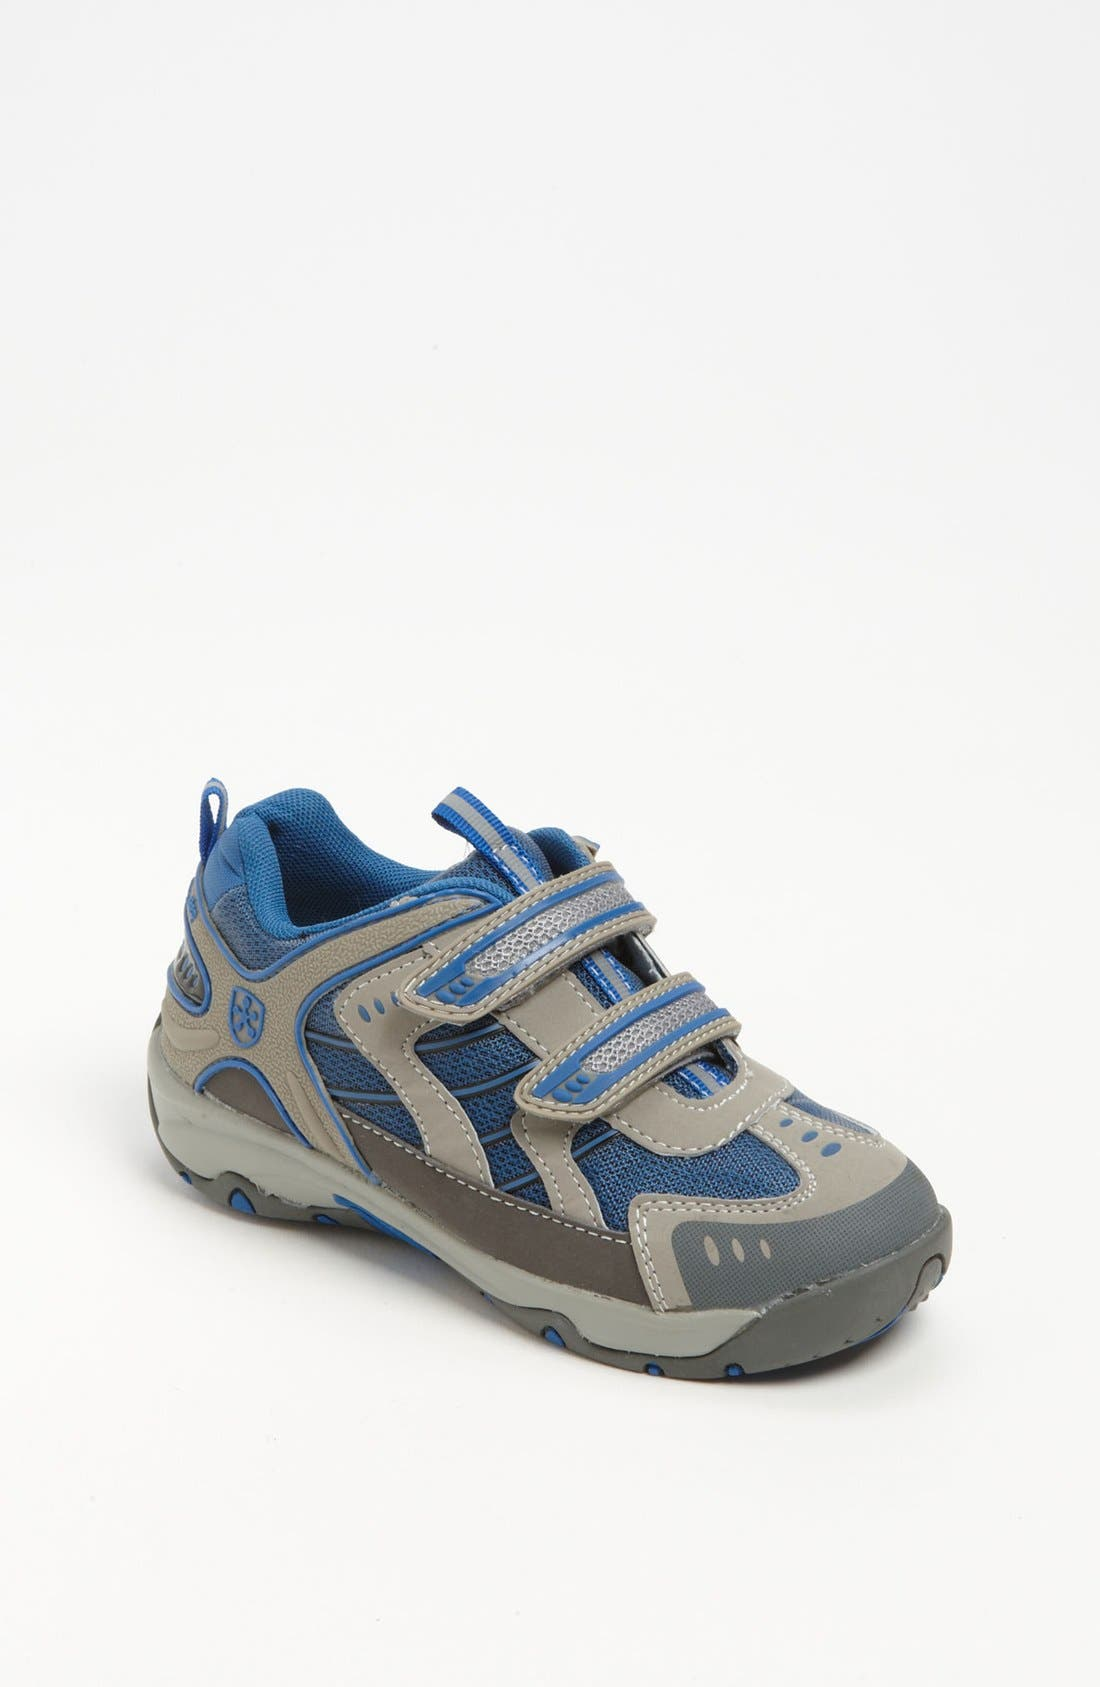 Main Image - Swissies 'Aramis II' Sneaker (Toddler & Little Kid)